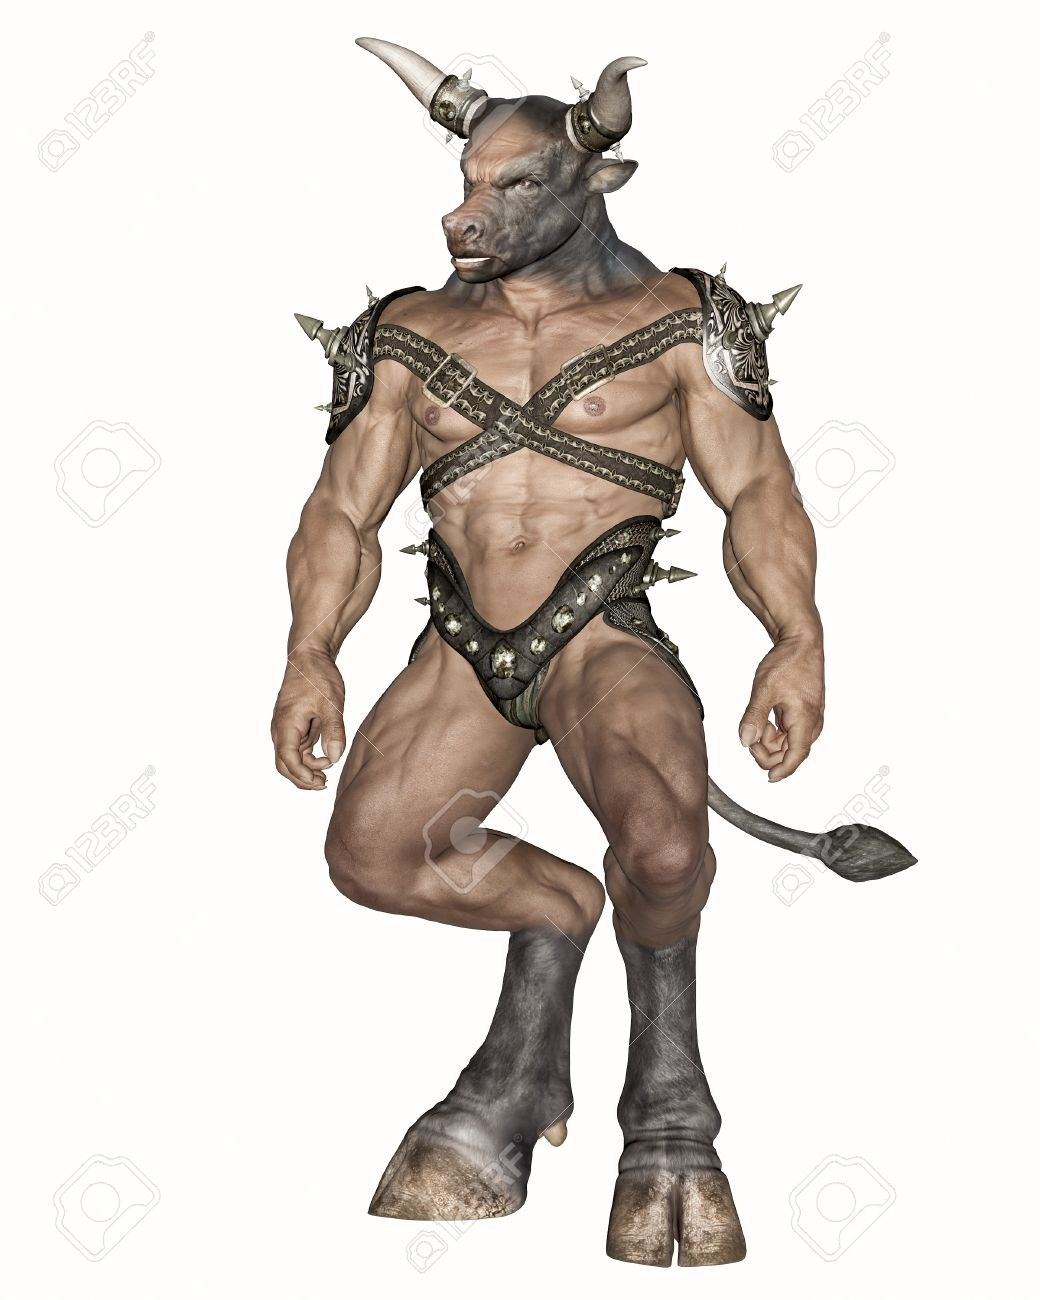 Minotaur screwing woman art sex pic